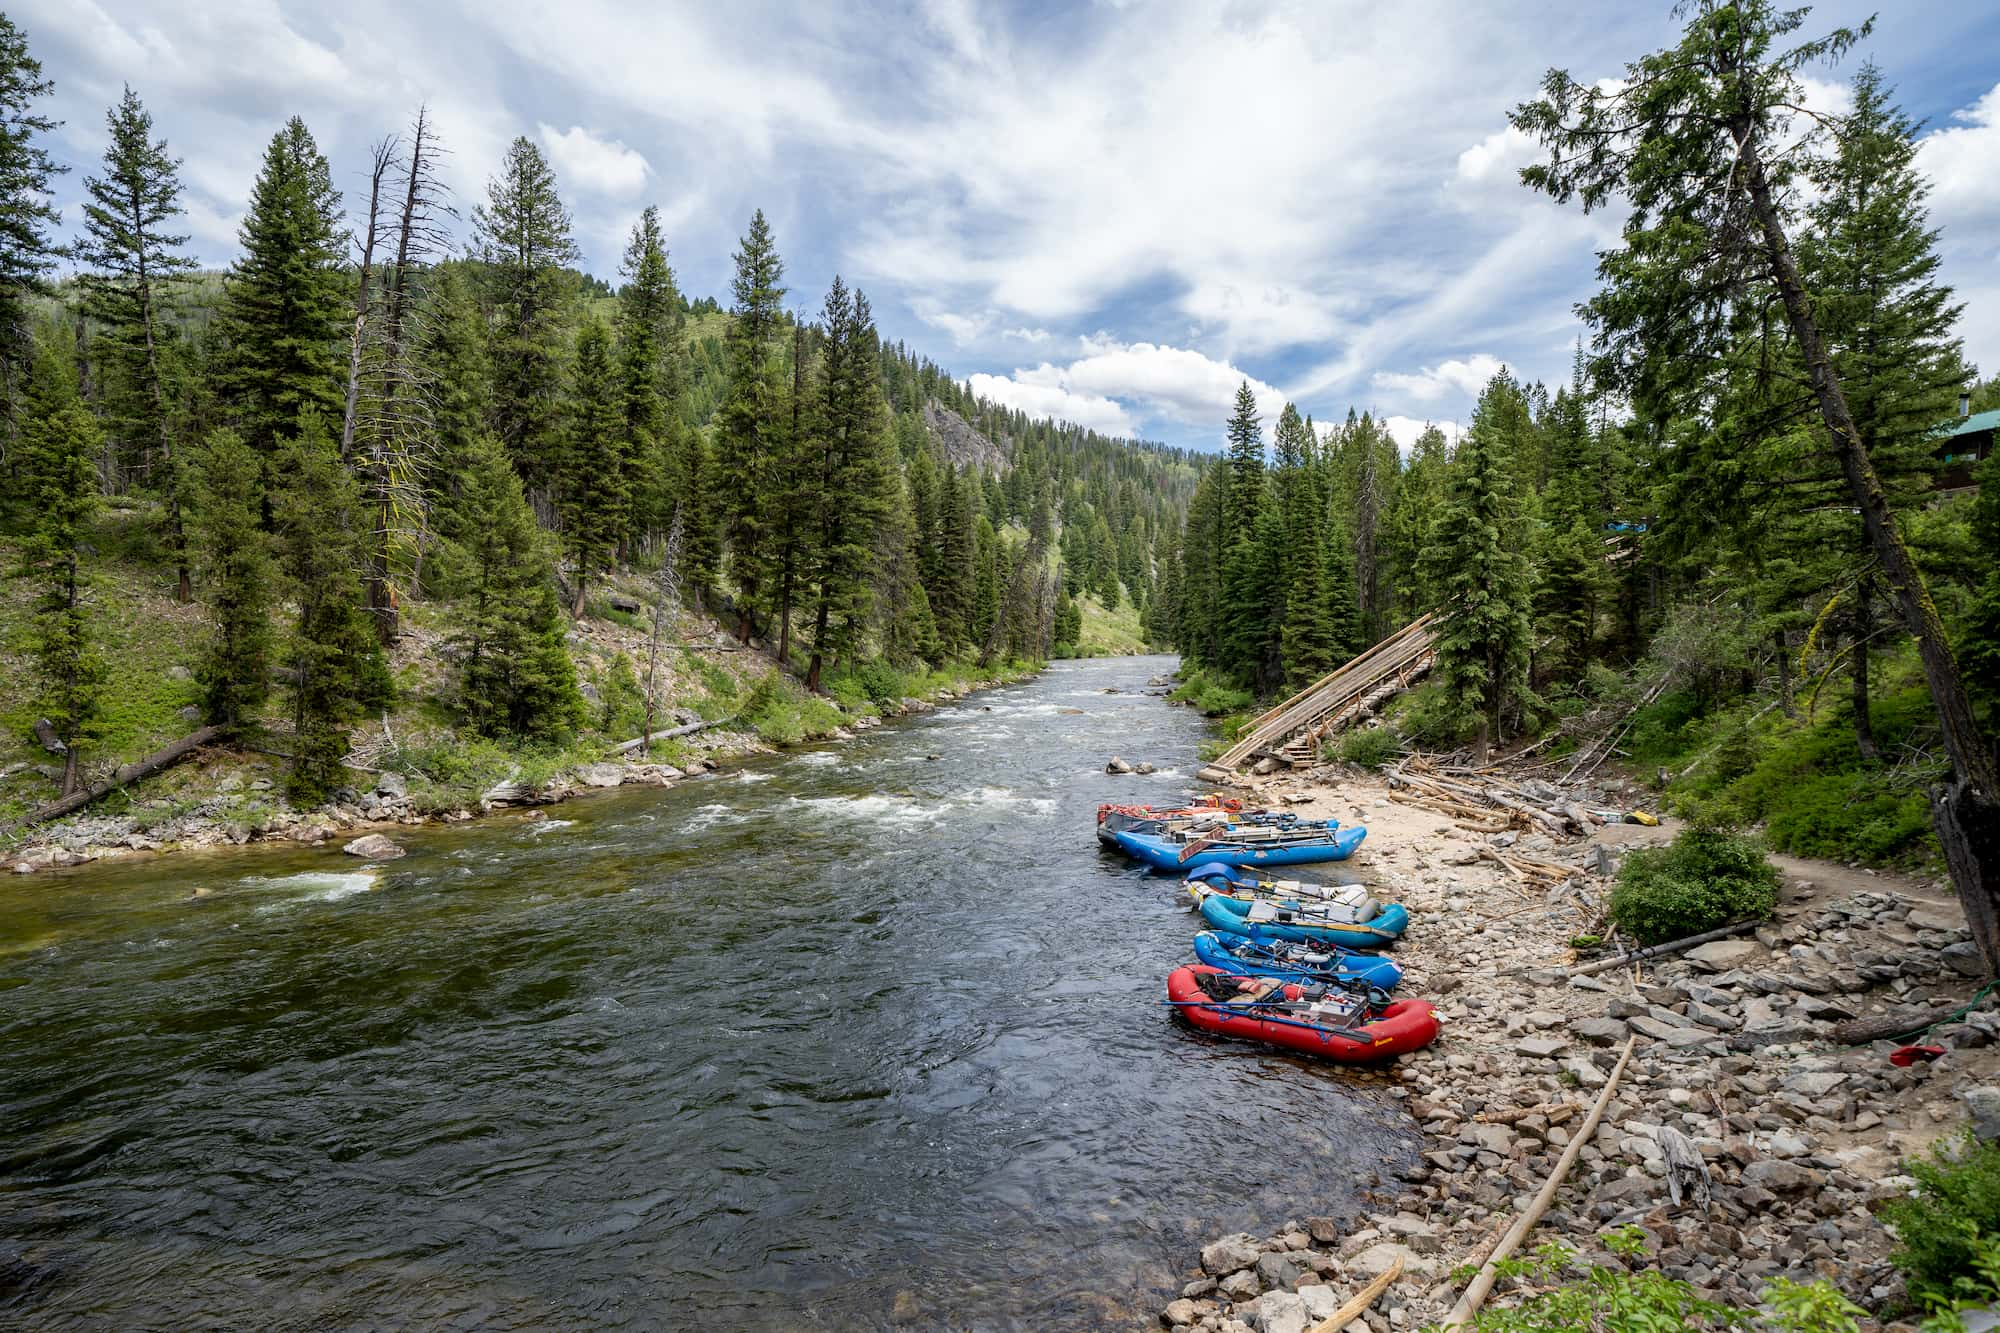 group of rafts on river bank in forest